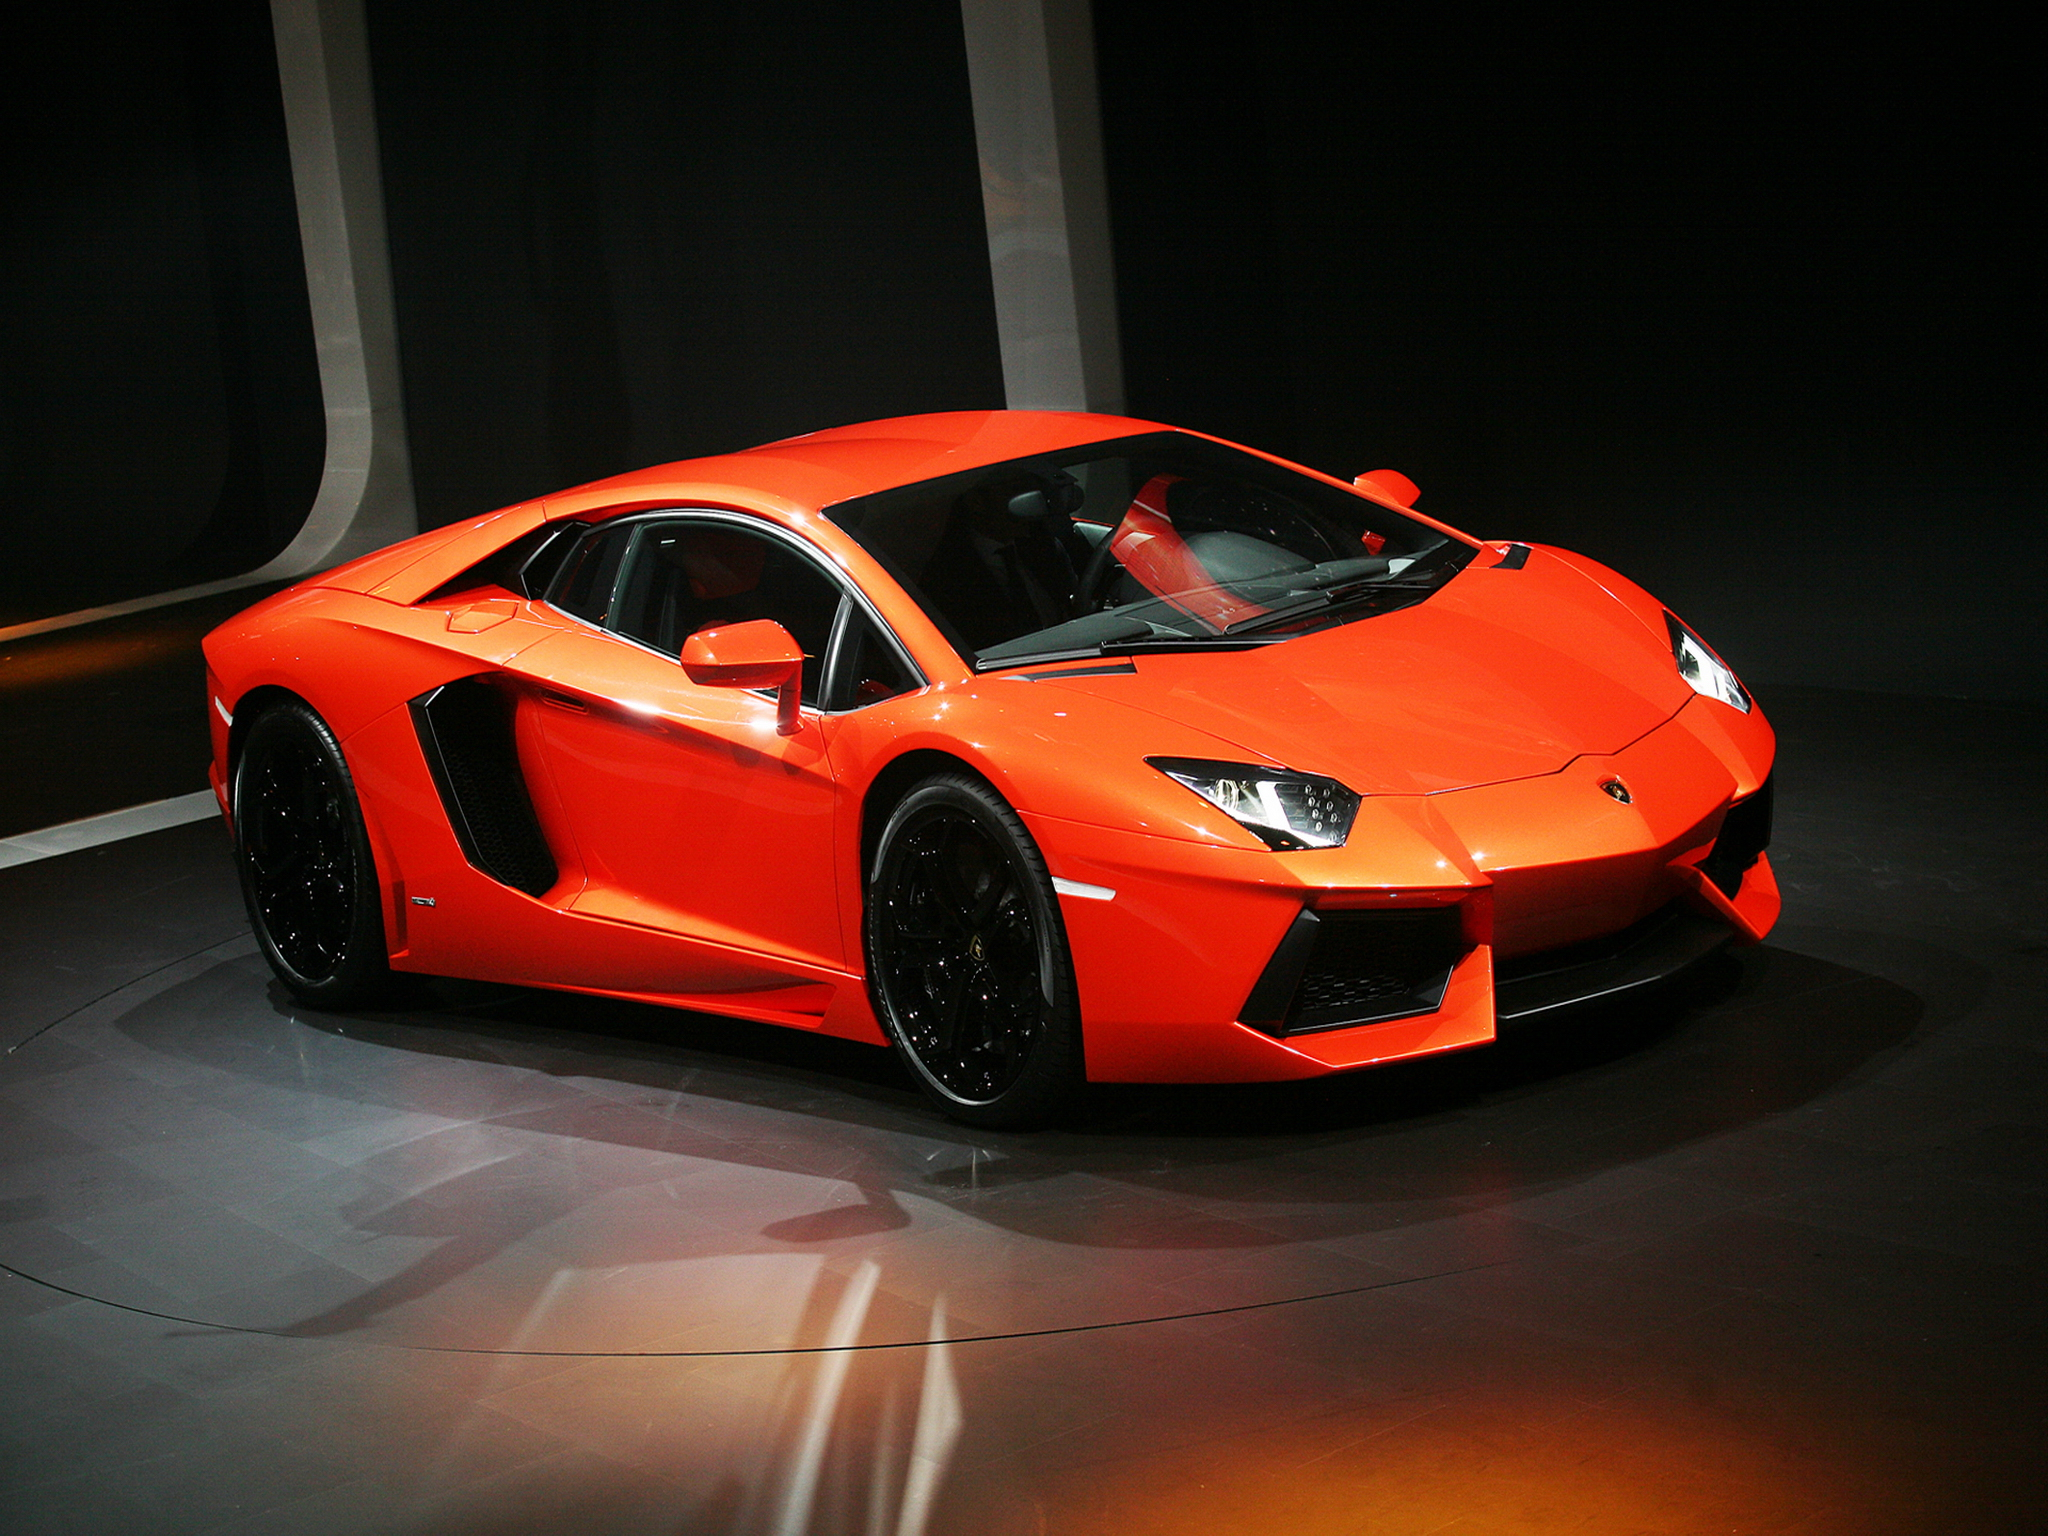 lamborghini aventador iPad 3 Wallpapers New iPad 3 Background 2048x1536